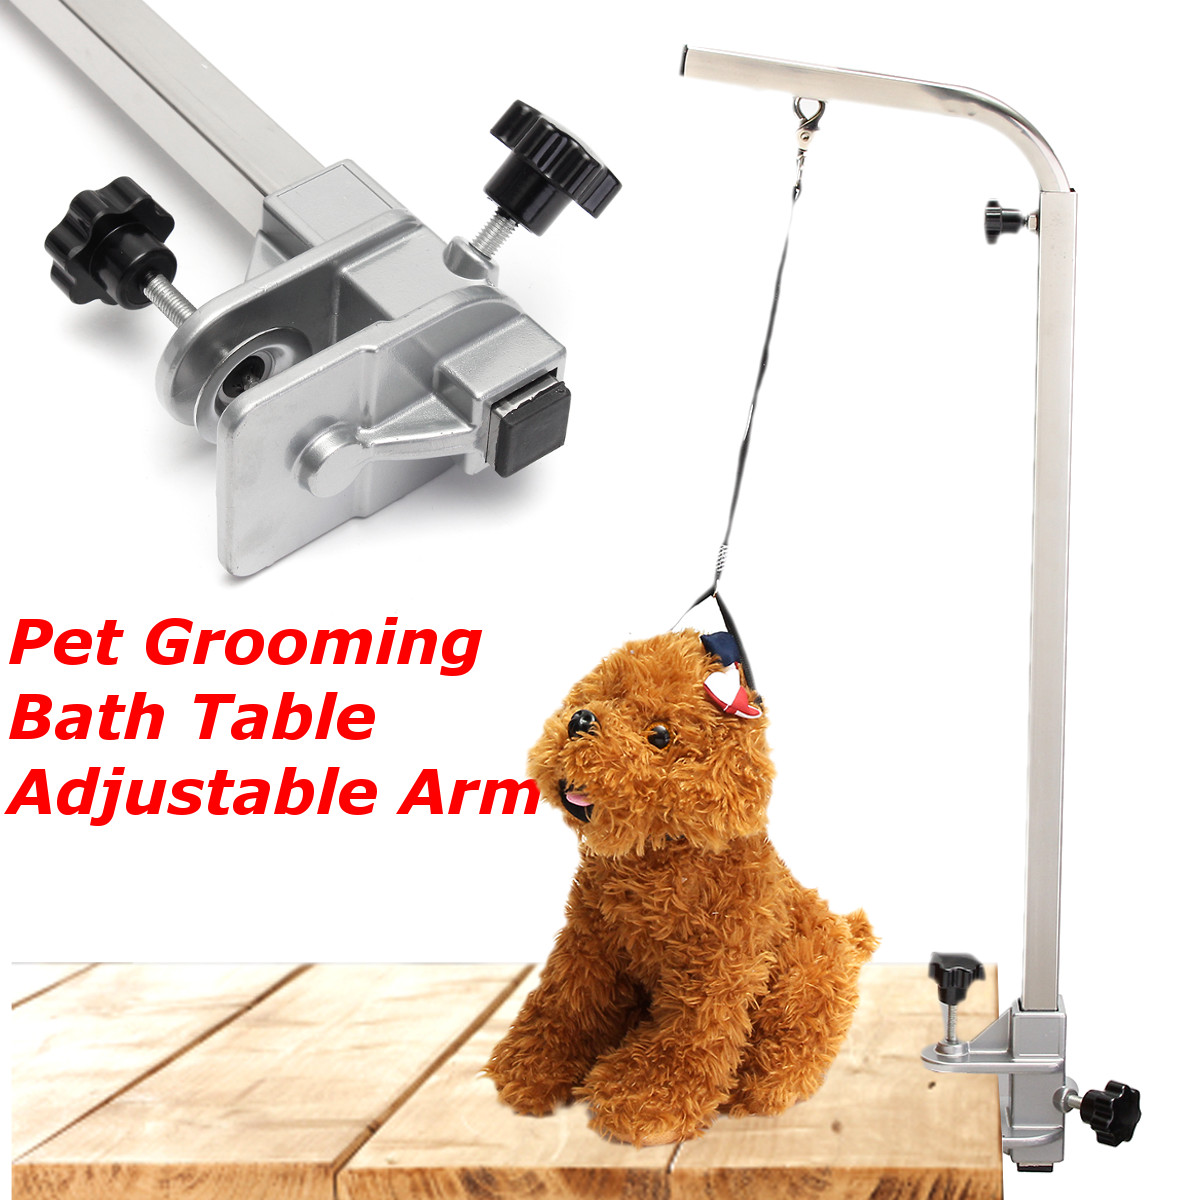 New Portable Adjustable Metal Table Arm Support Holder For Pet Dog Grooming Bath Table DeskNew Portable Adjustable Metal Table Arm Support Holder For Pet Dog Grooming Bath Table Desk